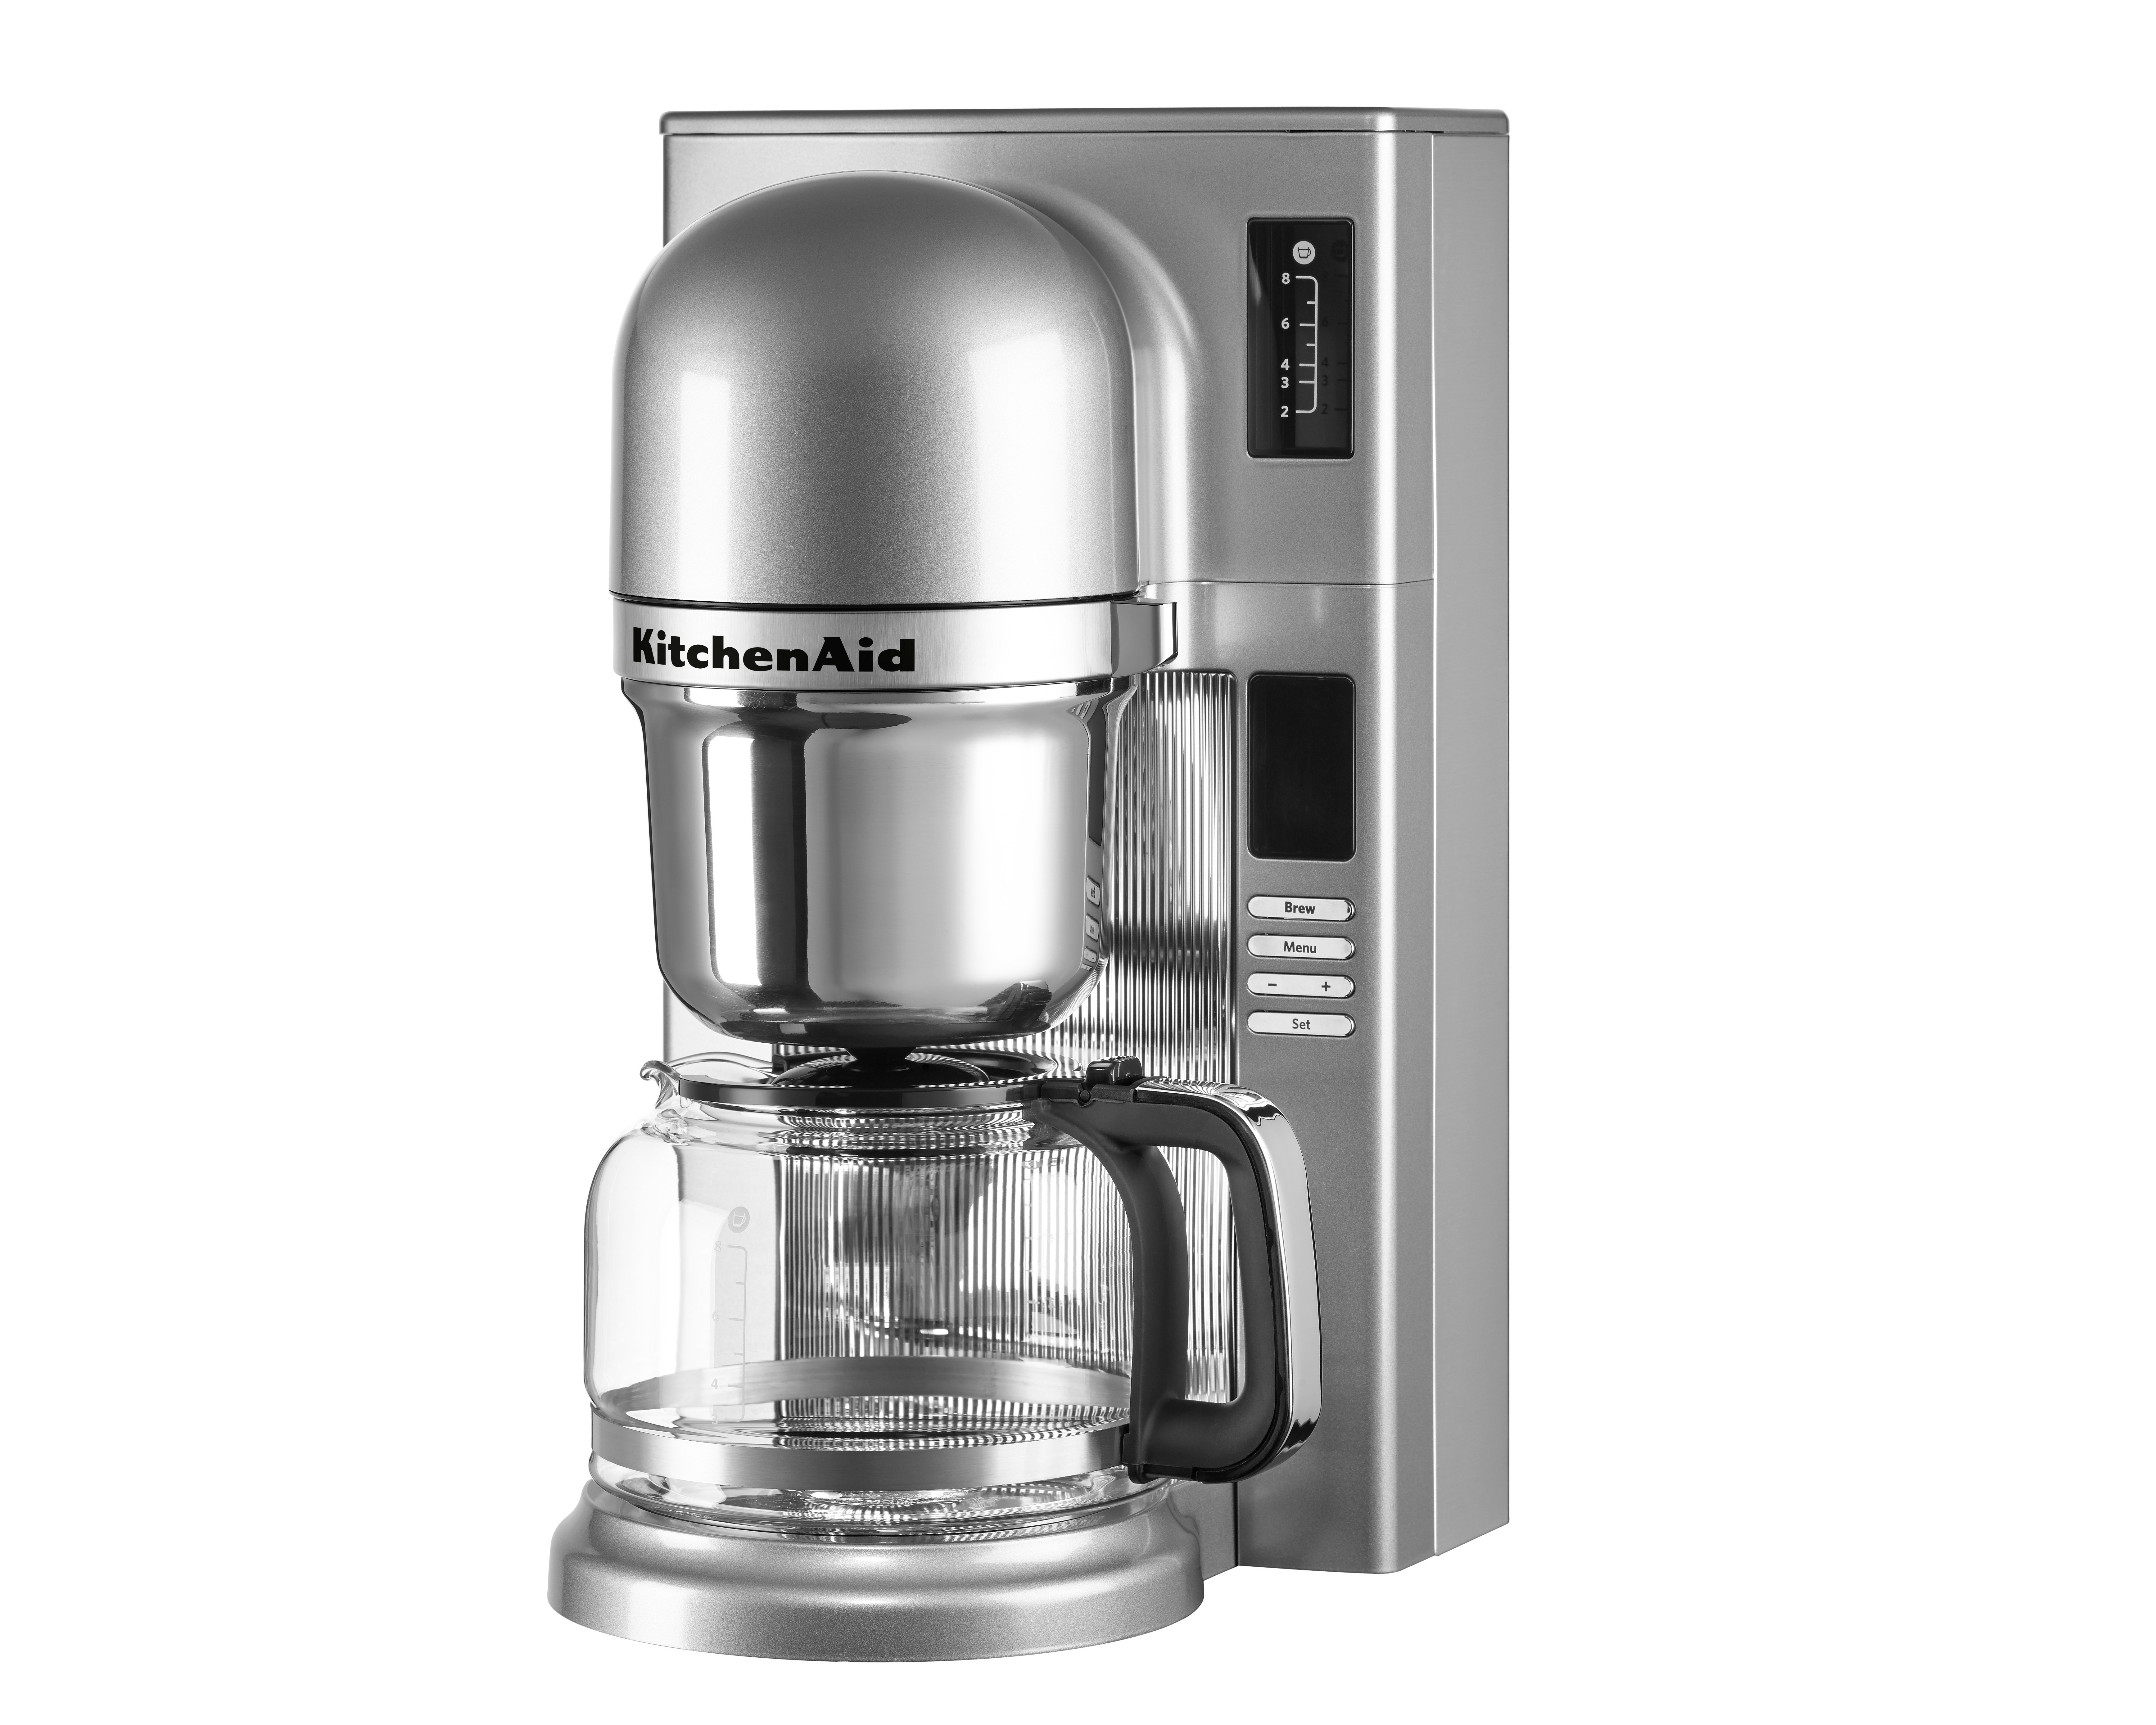 Buy Kitchenaid Pour Over Coffee Brewer Contour Silver